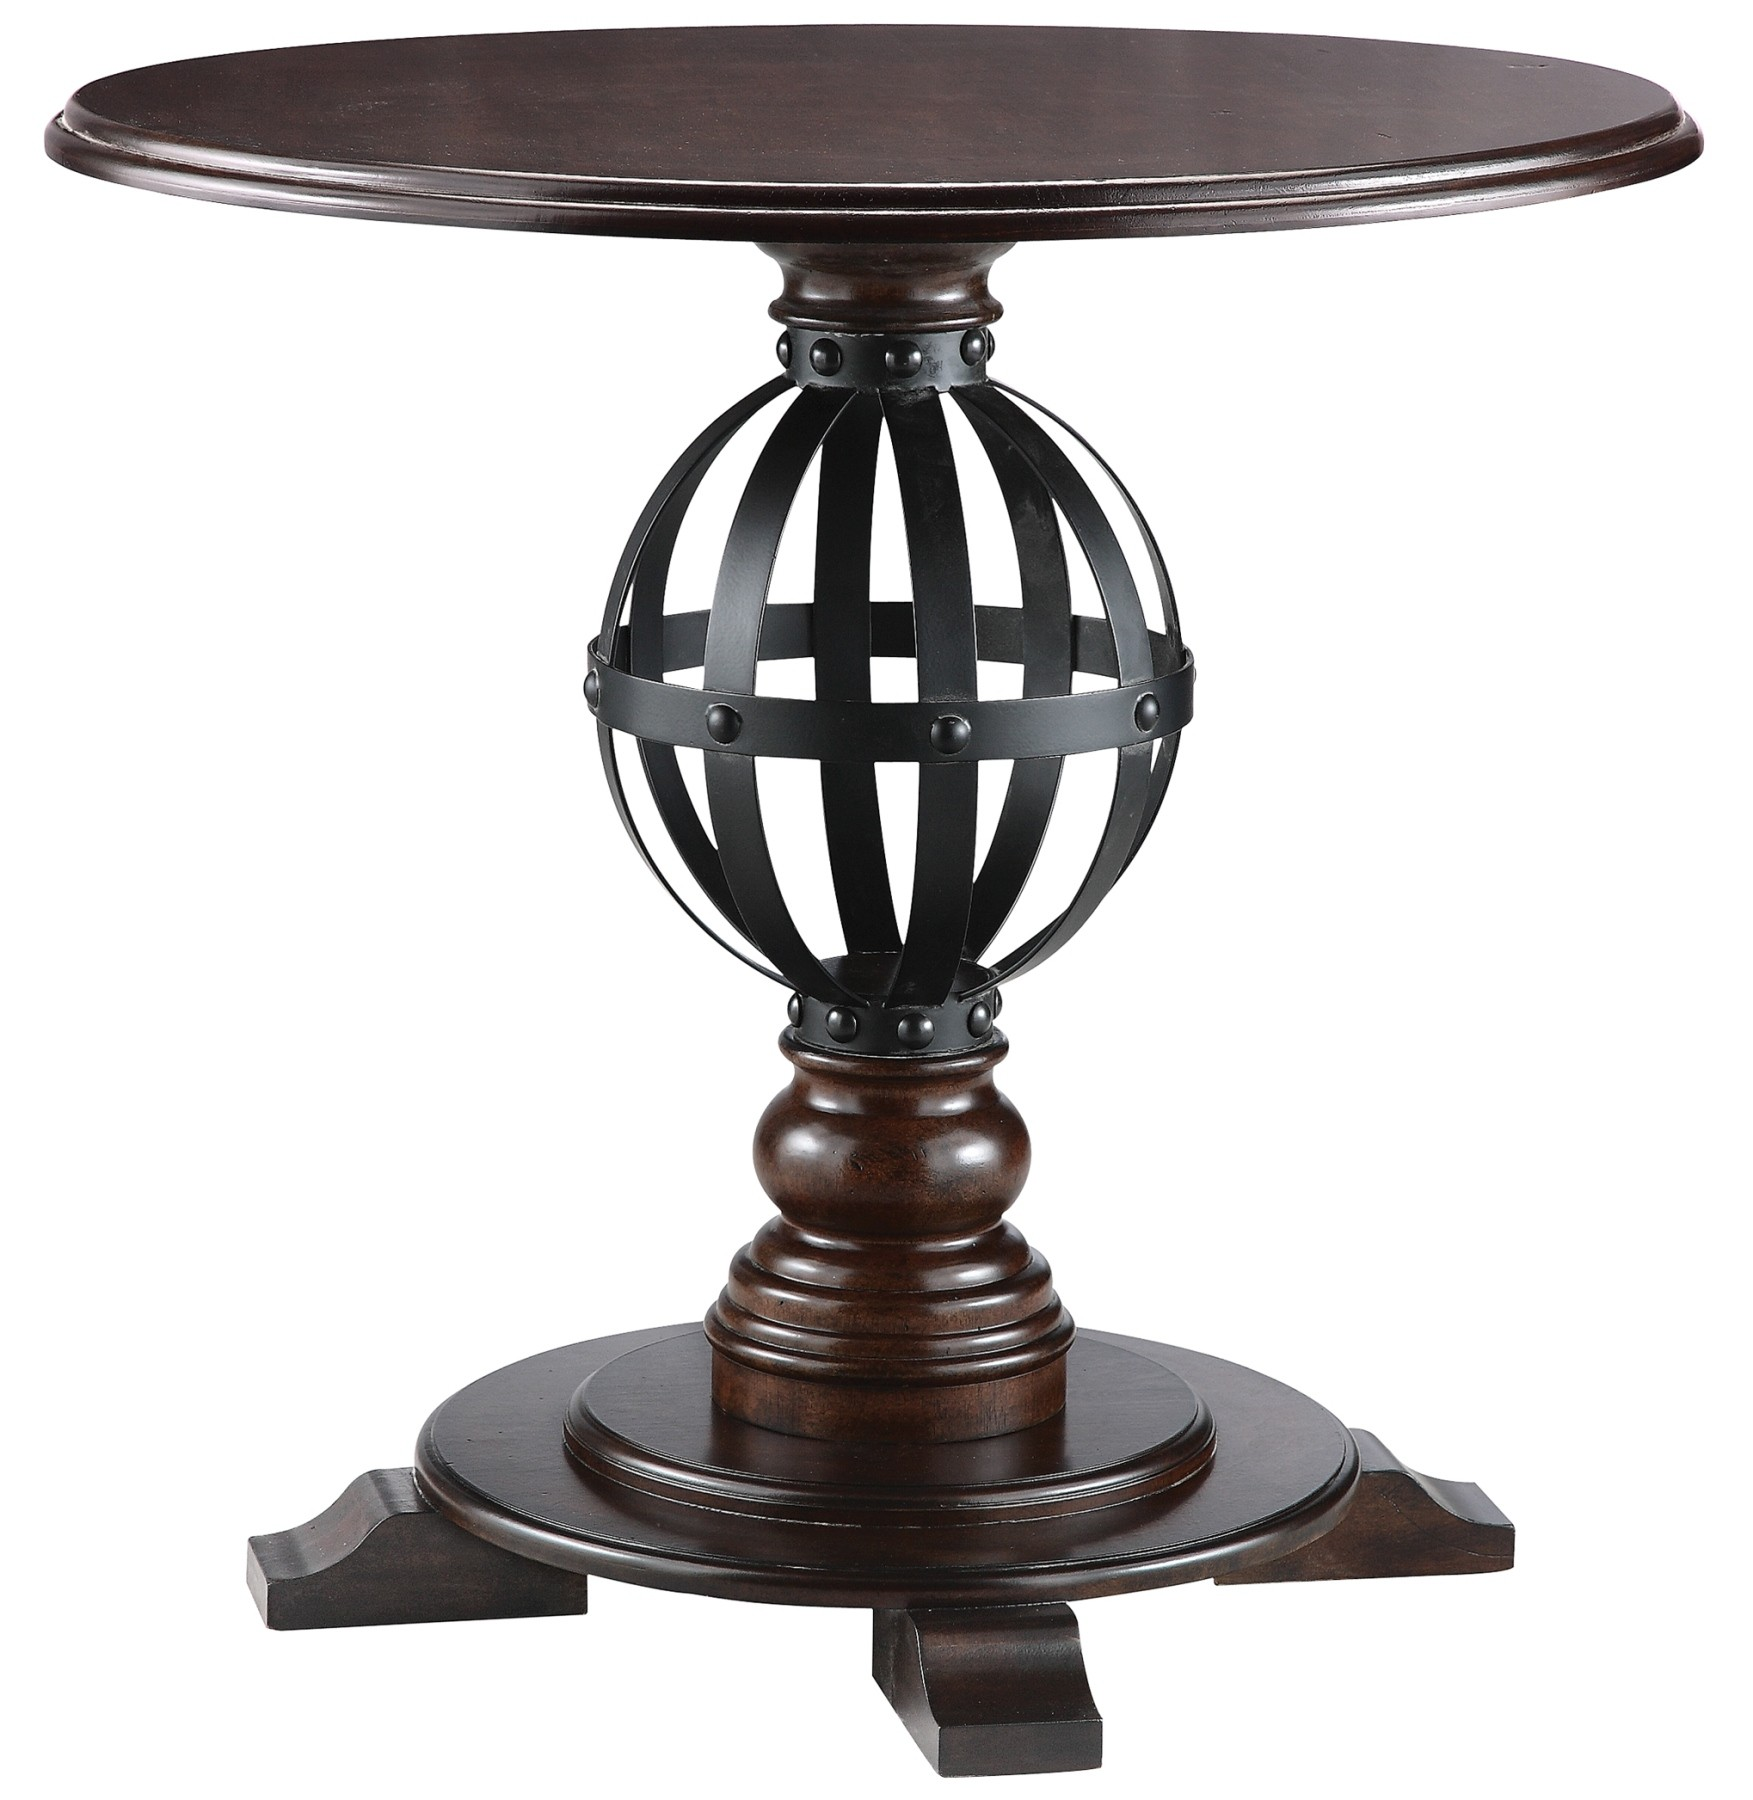 Round Accent Table With Metal Sphere 28247 Stein World